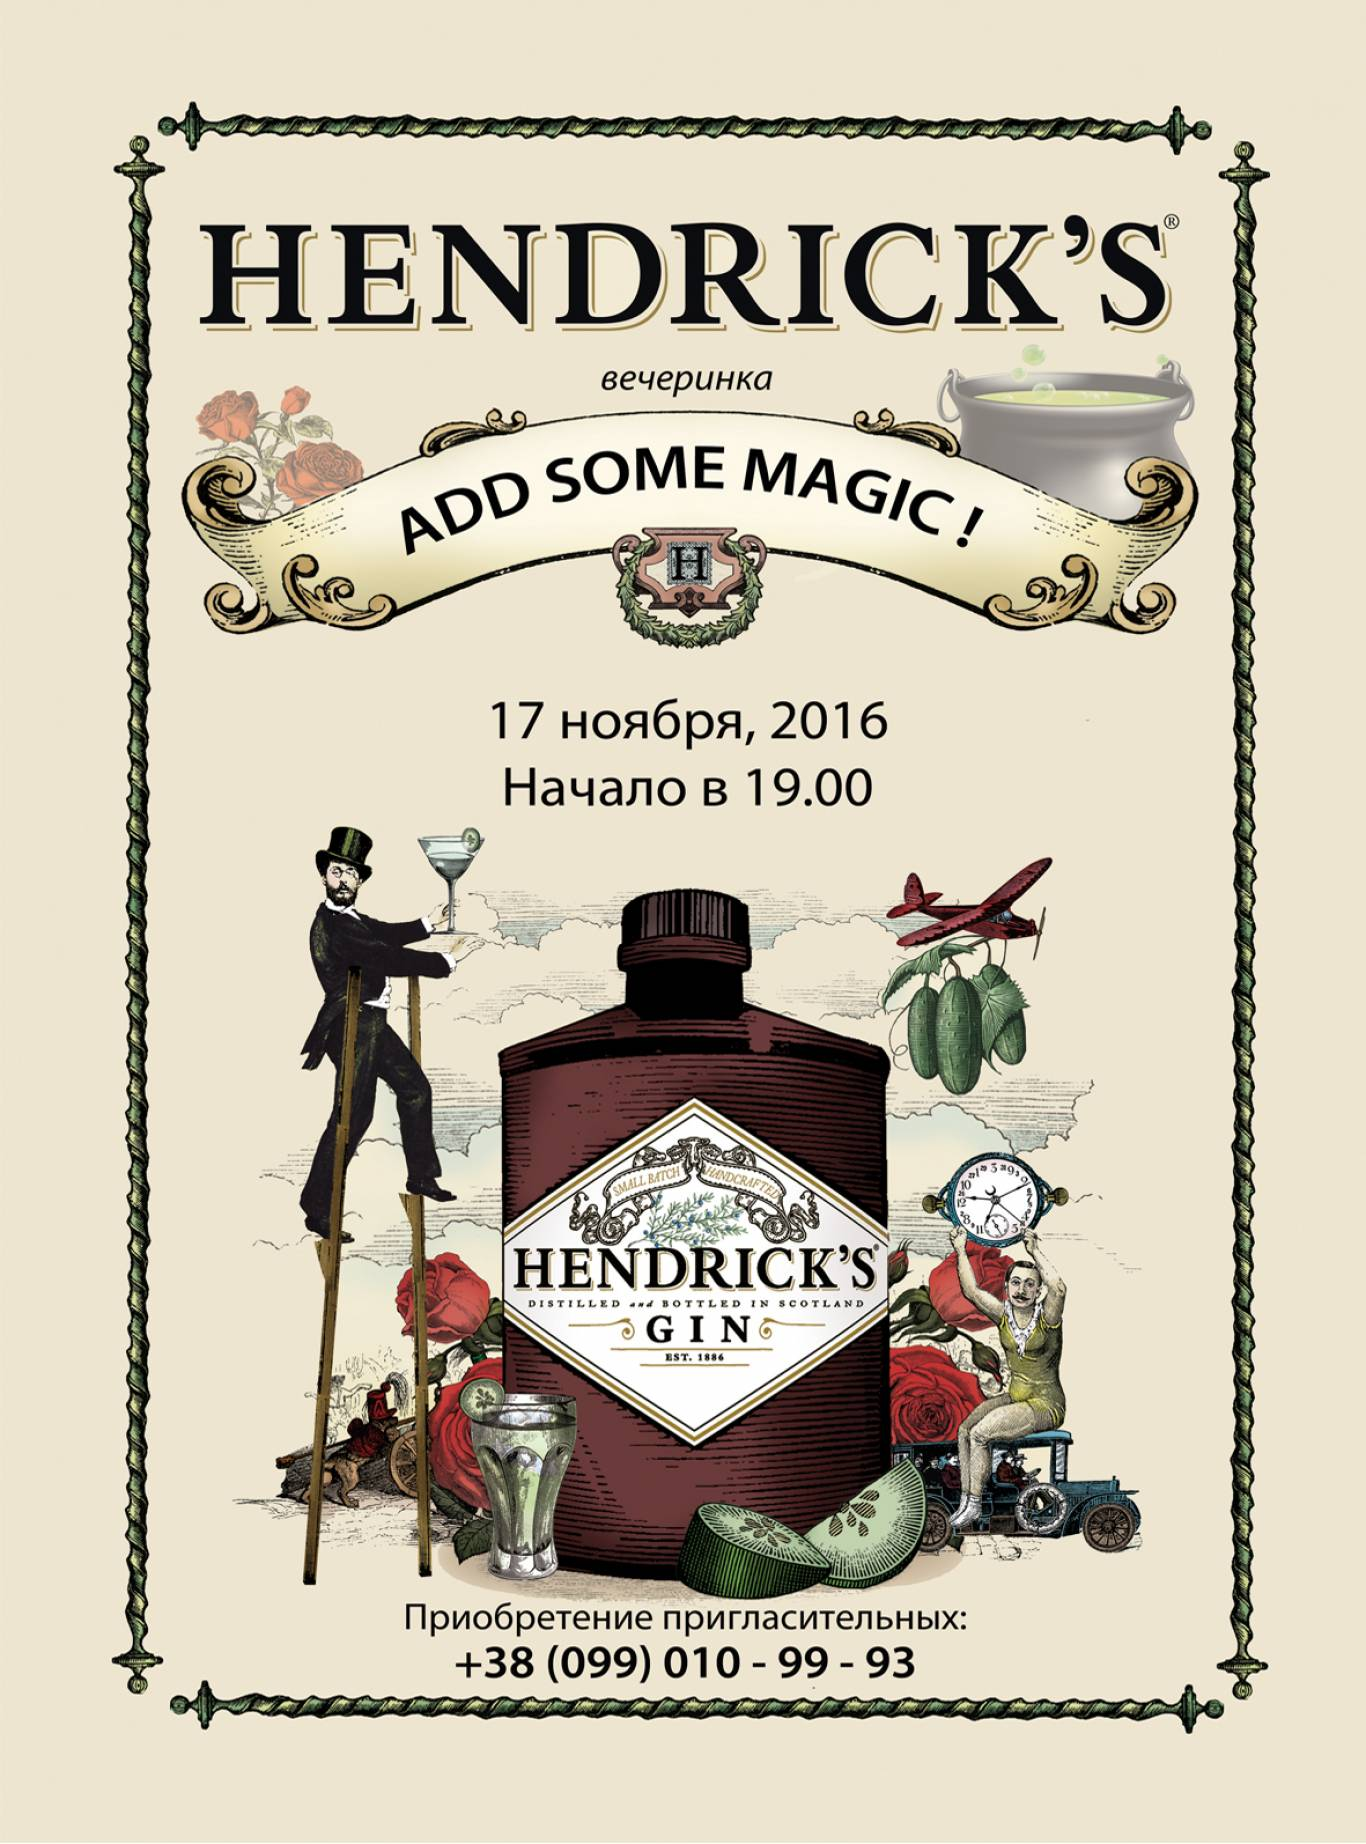 Hendrick's Bar: Add some magic party